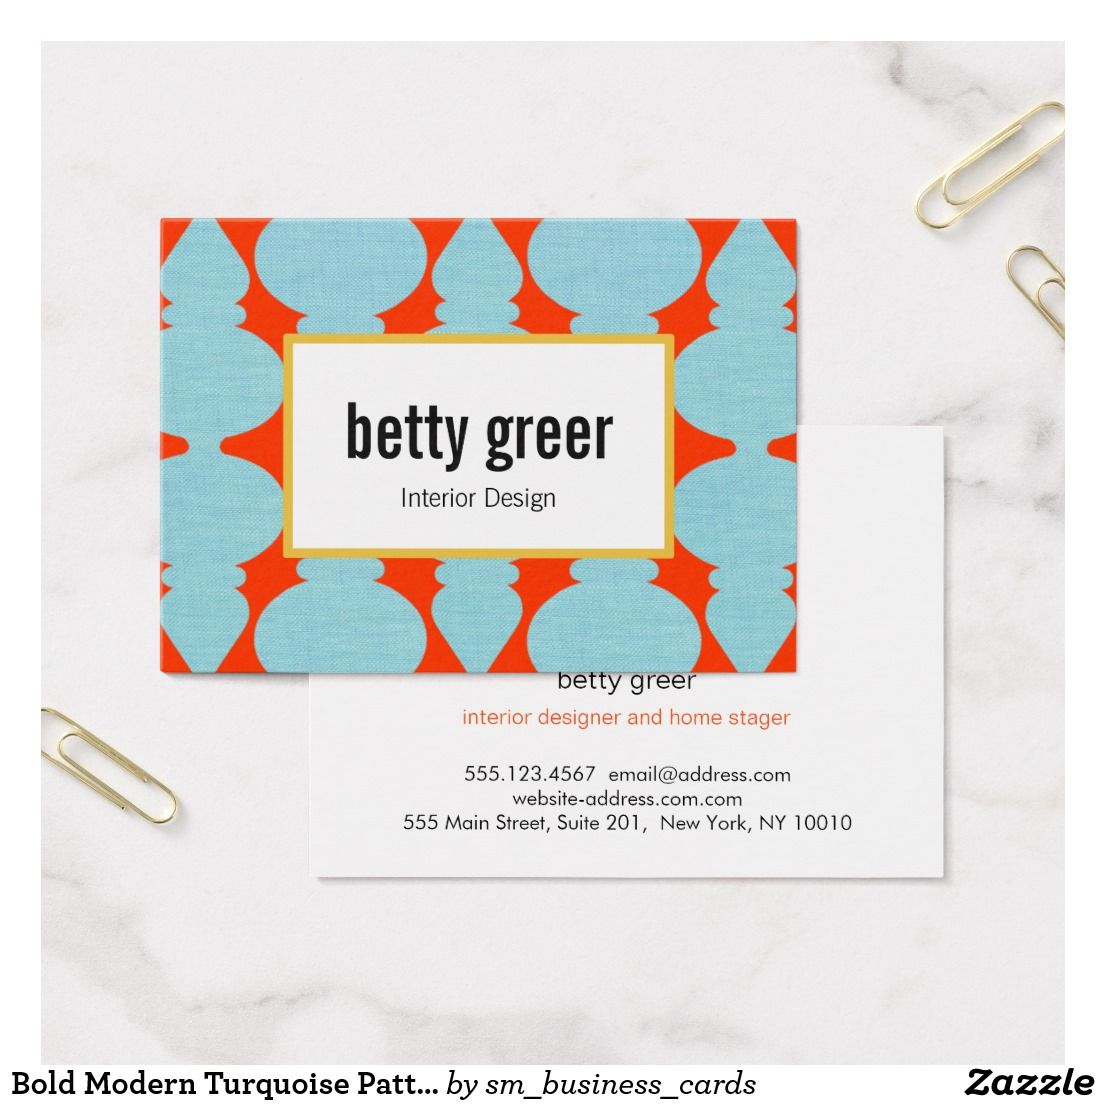 Bold modern turquoise pattern interior designer business card bold modern turquoise pattern interior designer business card reheart Images